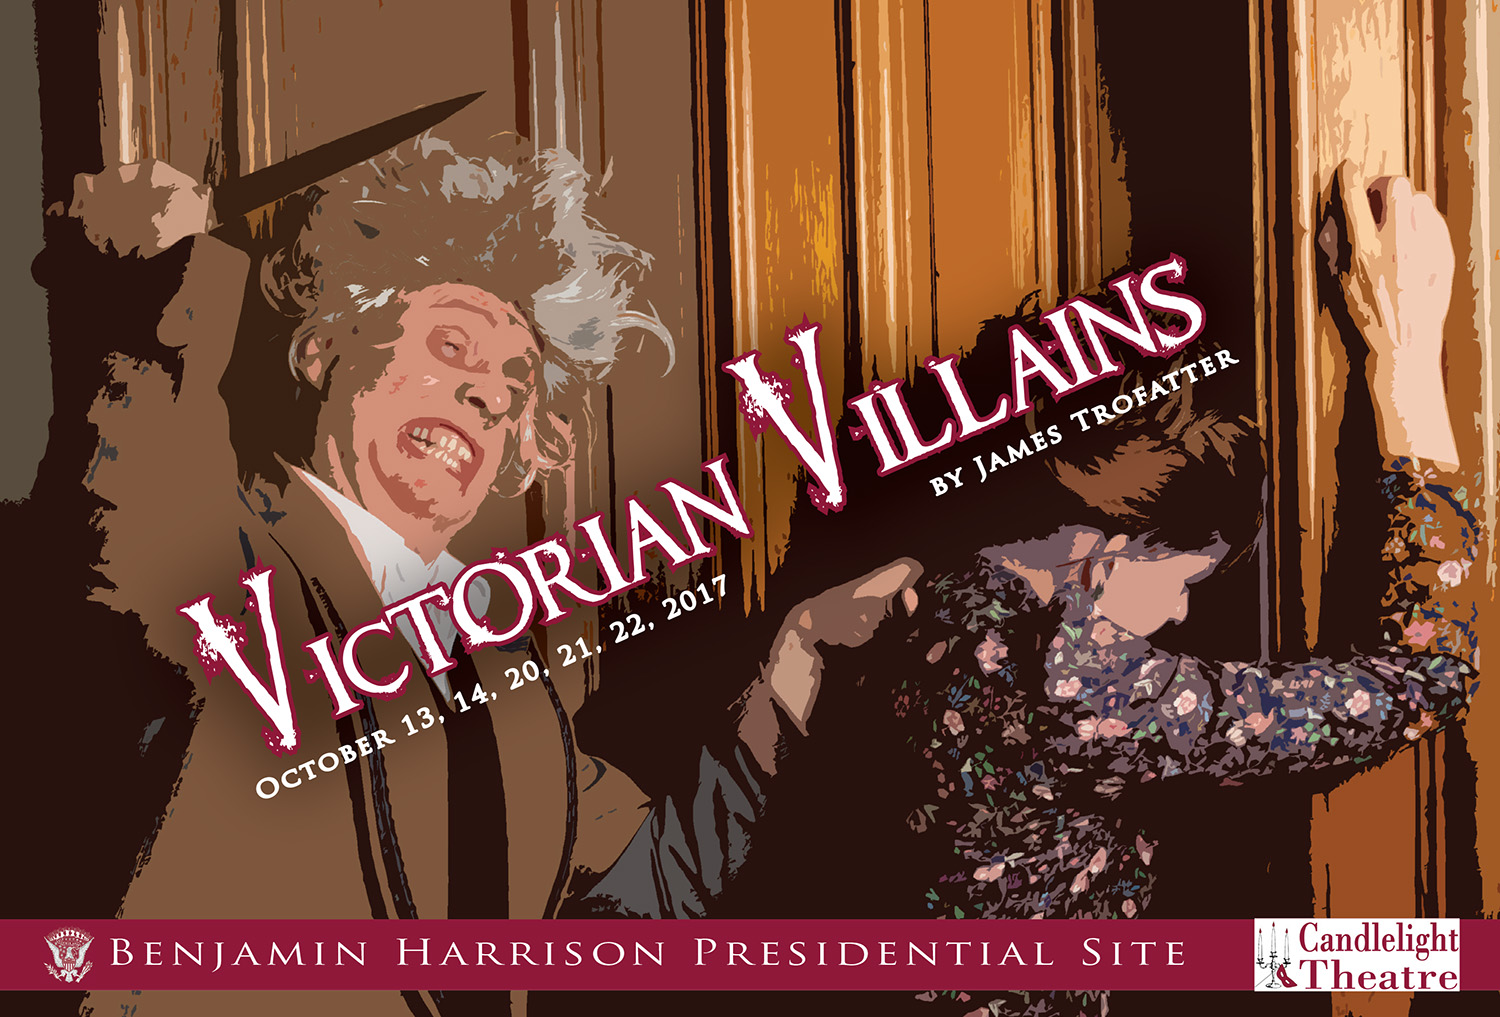 Photograph of a man with a knife threatening a woman. Text reads: Victorian Villains by James Trofatter.